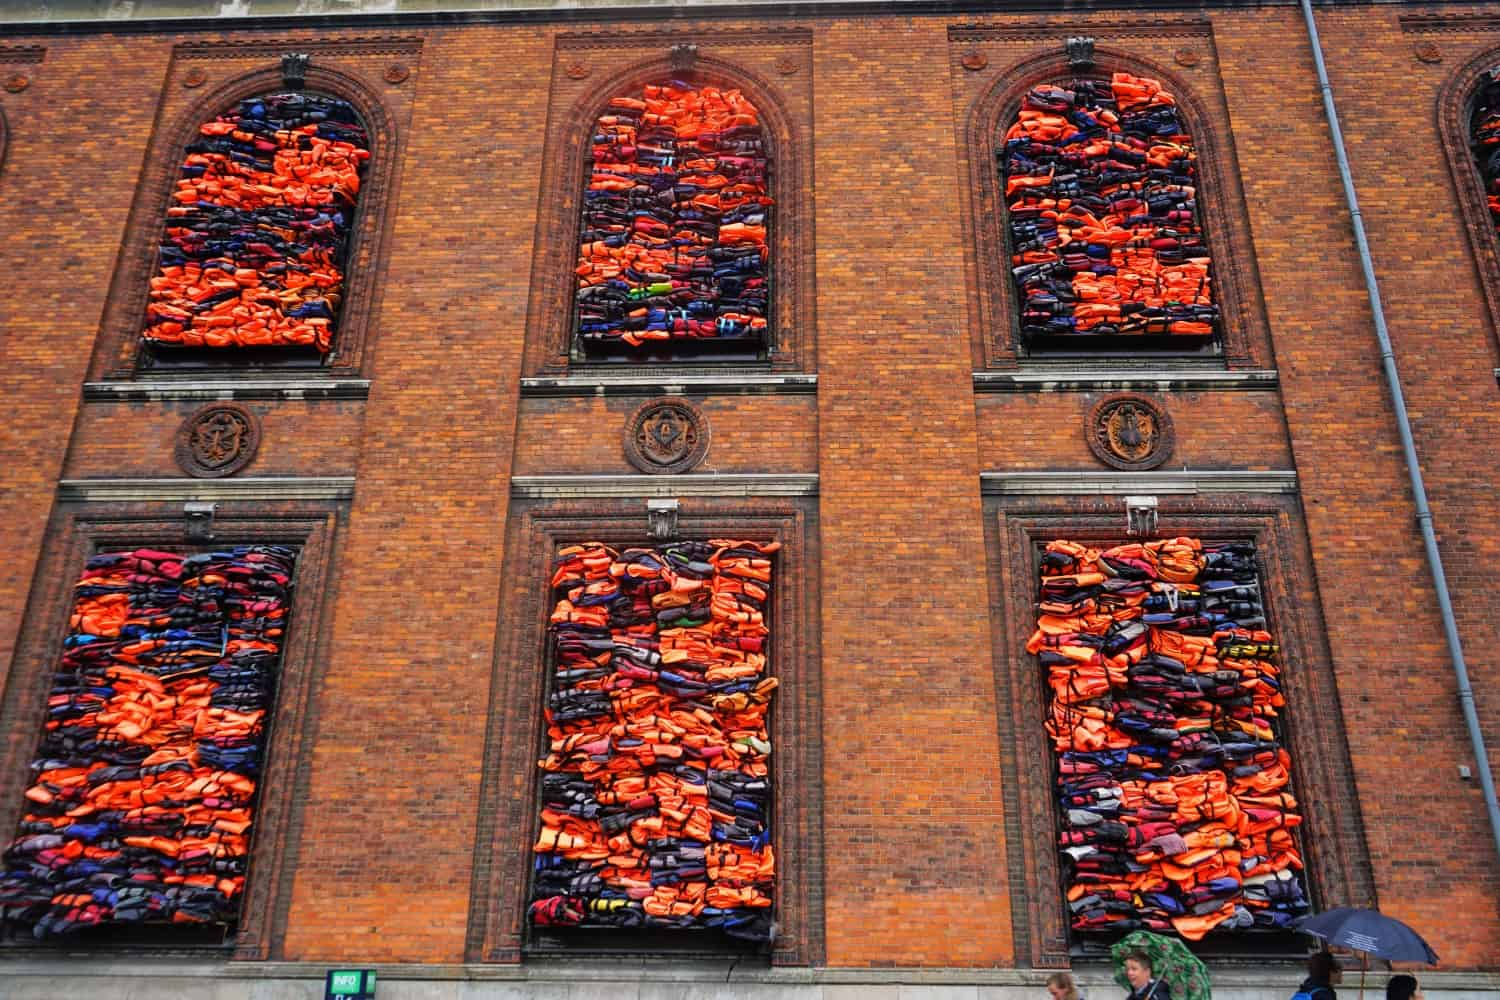 Life jackets at Nyhavn